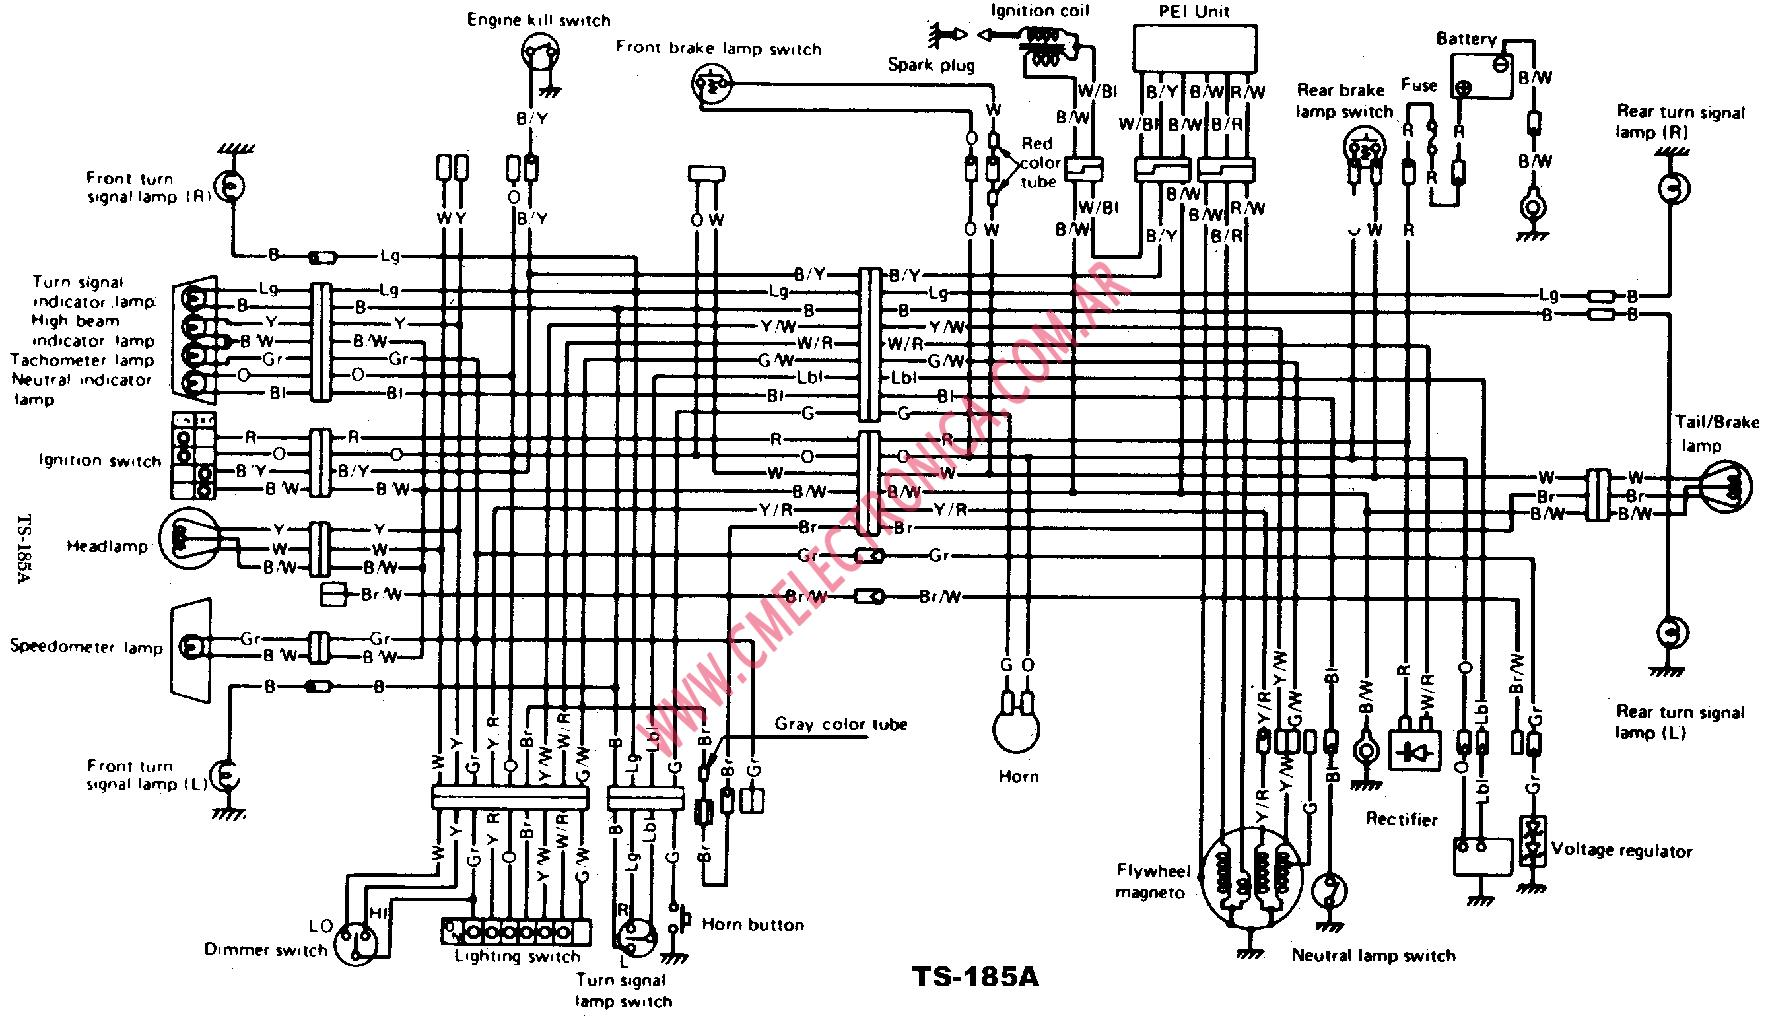 Wiring Diagram For Suzuki Intruder